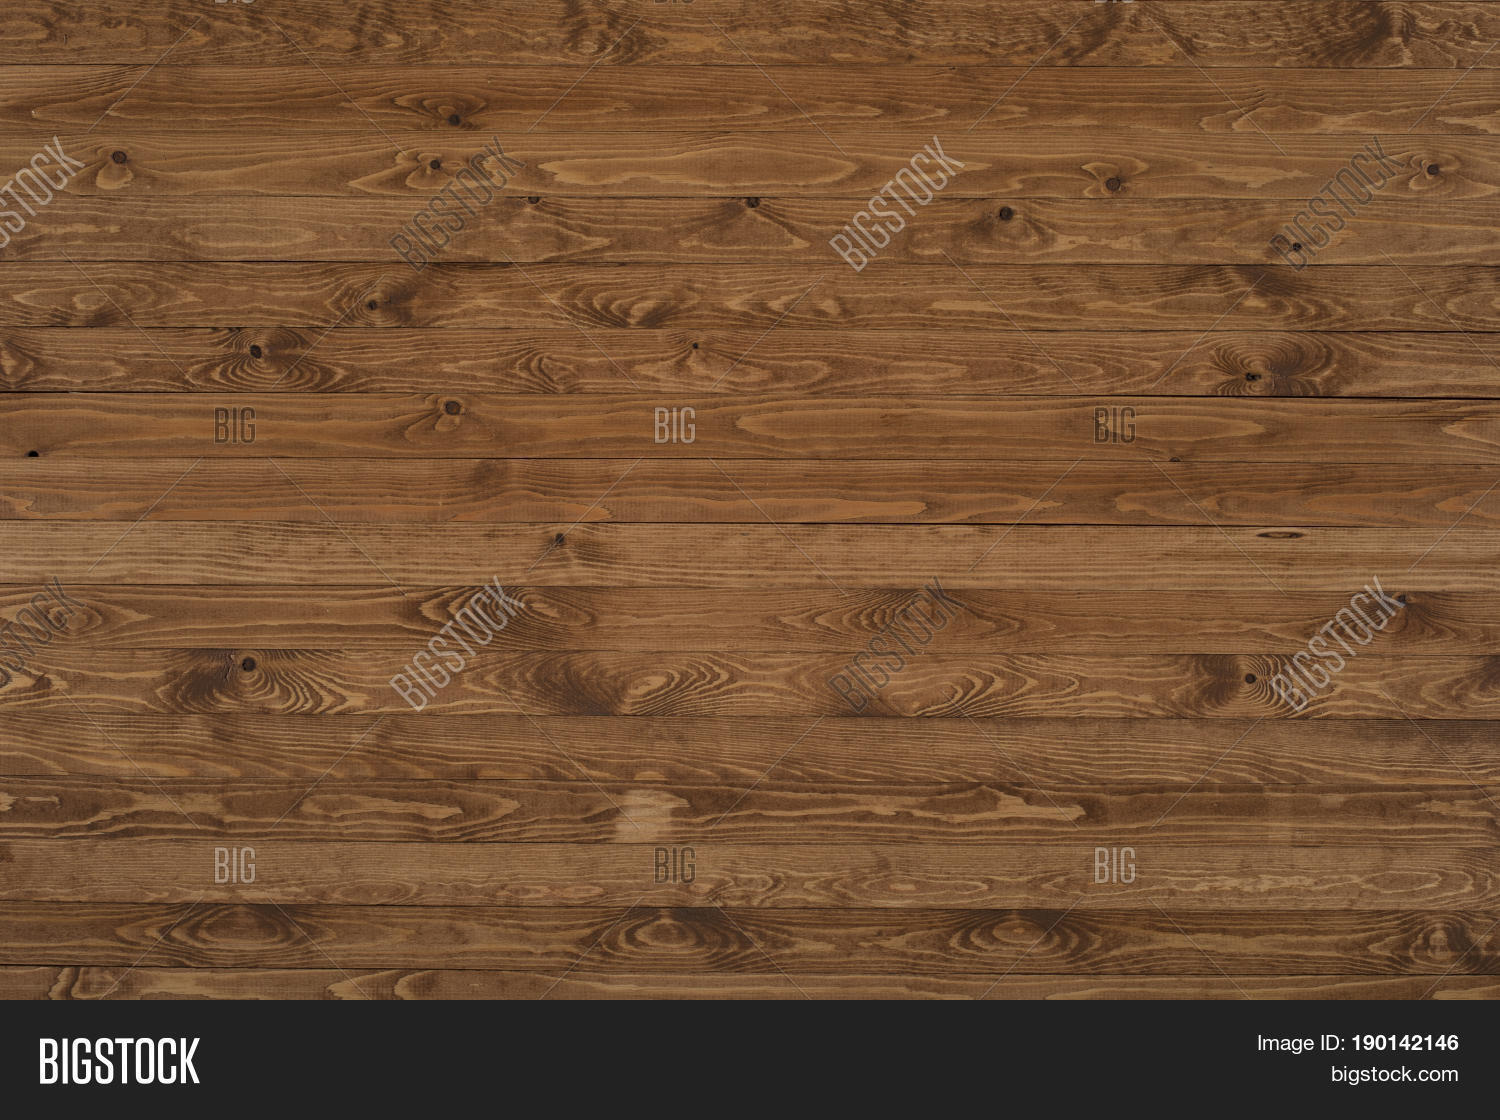 Old vintage white natural wood or wooden texture background or - Wall Of Wooden Texture Plank Boards Wooden Texture Material Background Rustic Wooden Texture